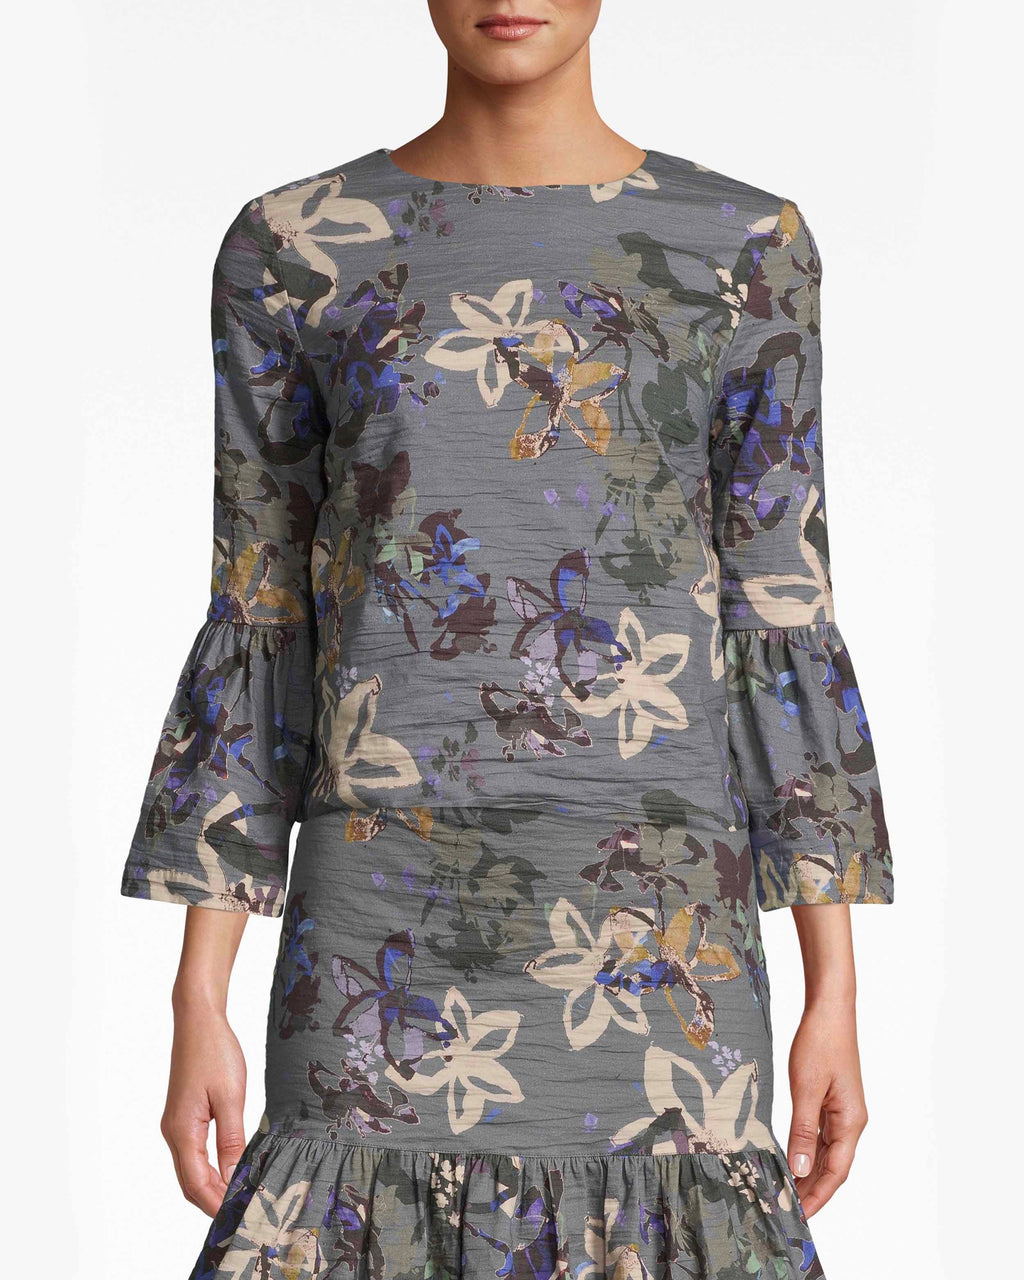 BH10486 - Autumn Dream Cotton Metal Bell Sleeve Top - tops - blouses - Forever in a flower mood. This bell sleeve top easily moves from work to dinner with the muted shade and Autumn Dream print. The Cotton Metal fabric makes it more breathable. Cutout and back button for closure.